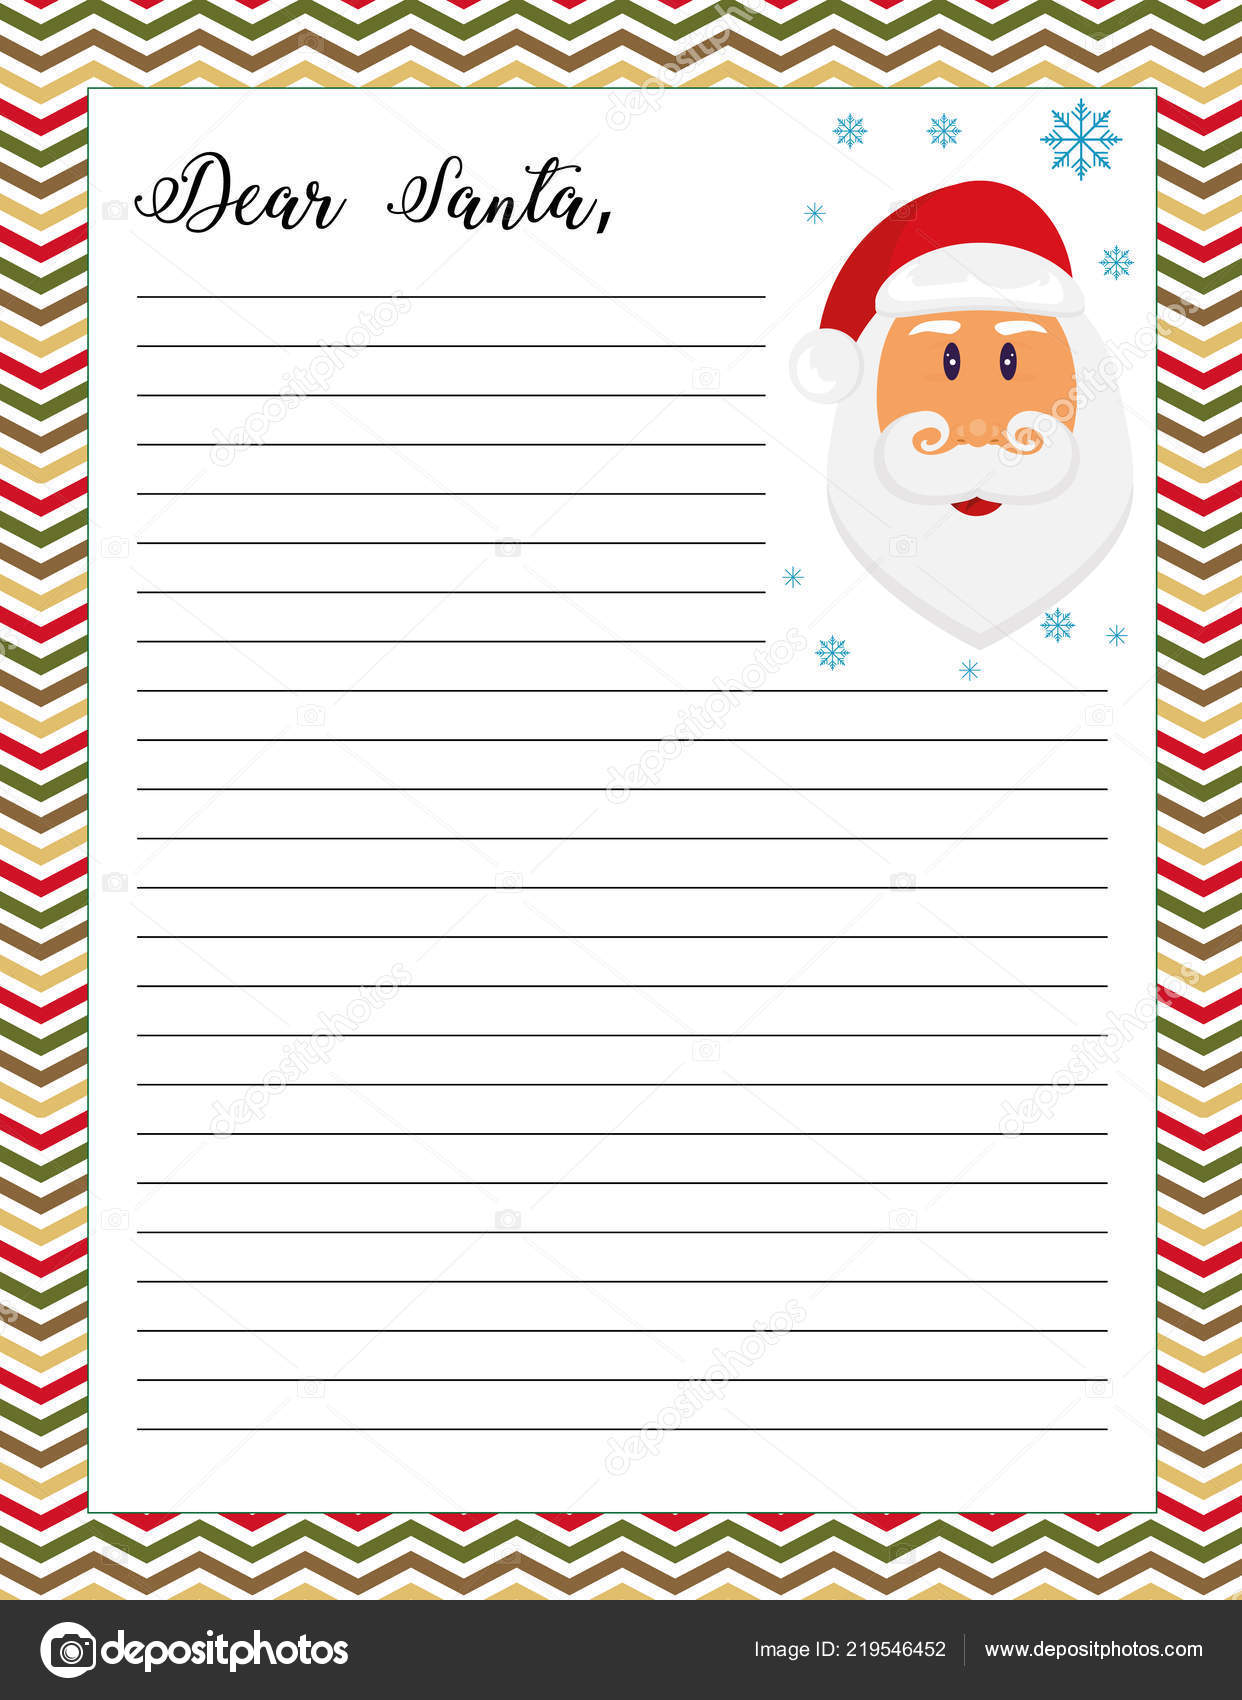 picture regarding Letter From Santa Printable called Letter Santa Printable Website page Santa Claus Case in point Inventory